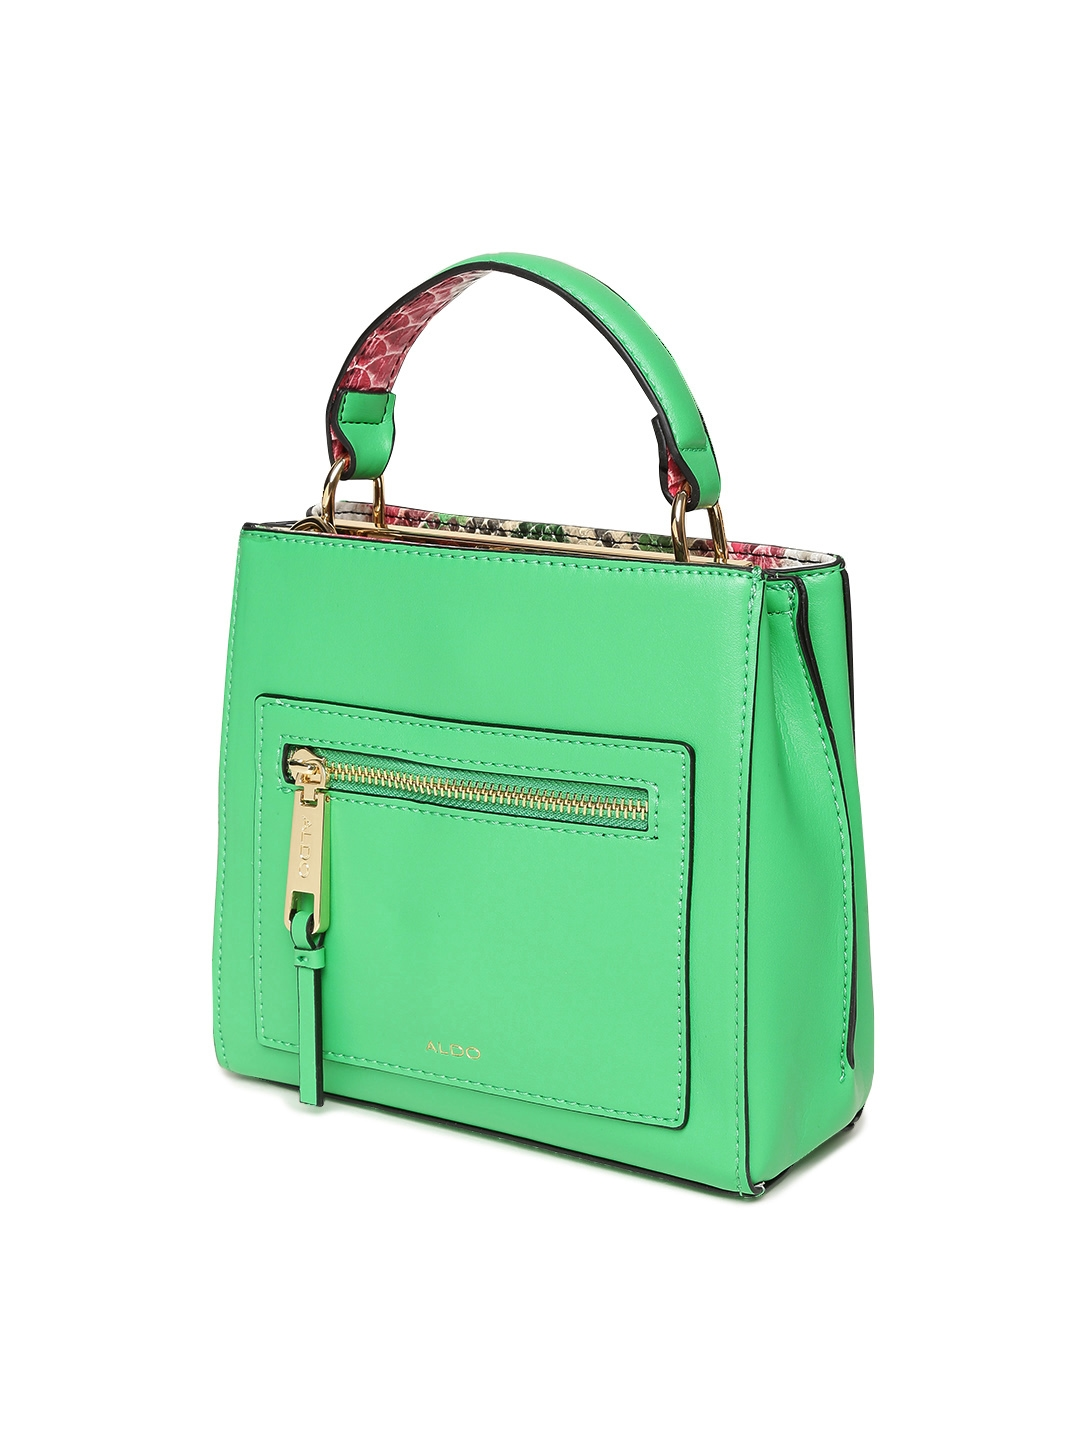 b629757c8c7 Buy ALDO Green Solid Handbag With Sling Strap - Handbags for Women ...